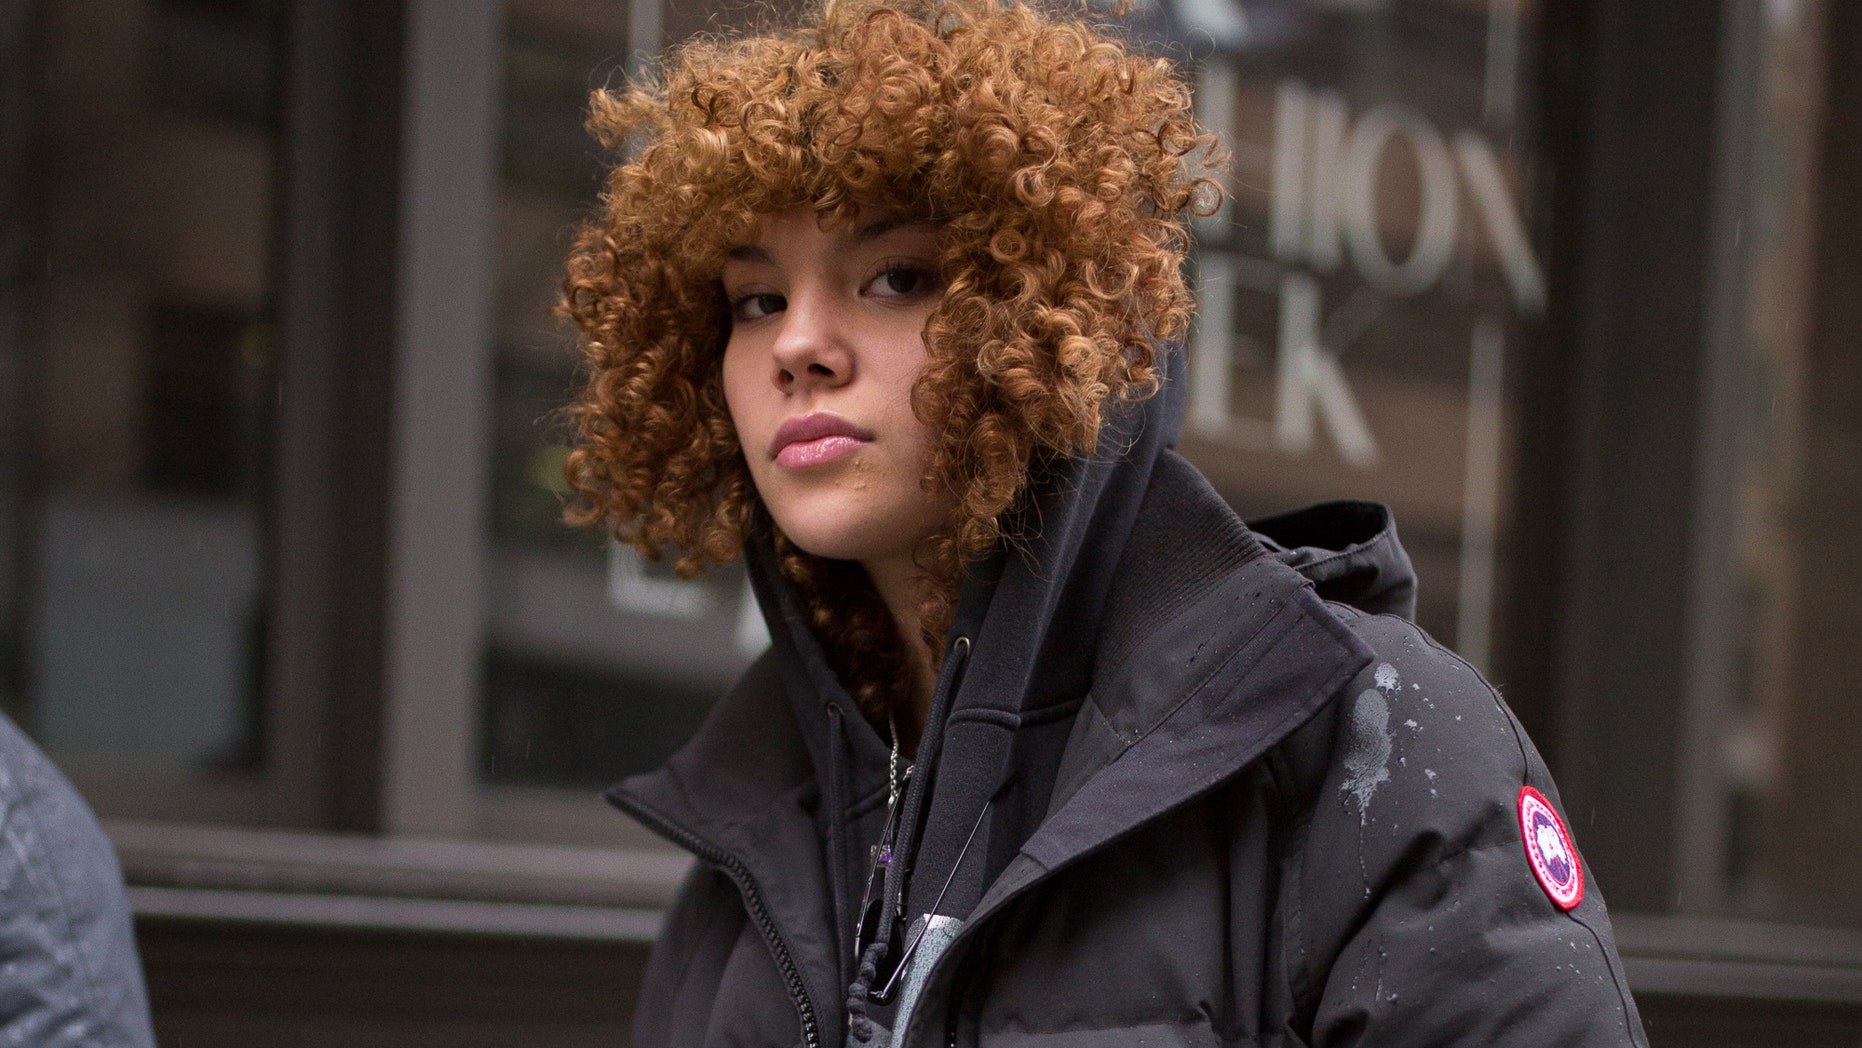 """The school has banned jackets from brands including Moncler, Pyrenex and Canada Goose (like the one seen above) in order to """"poverty-proof"""" the school."""